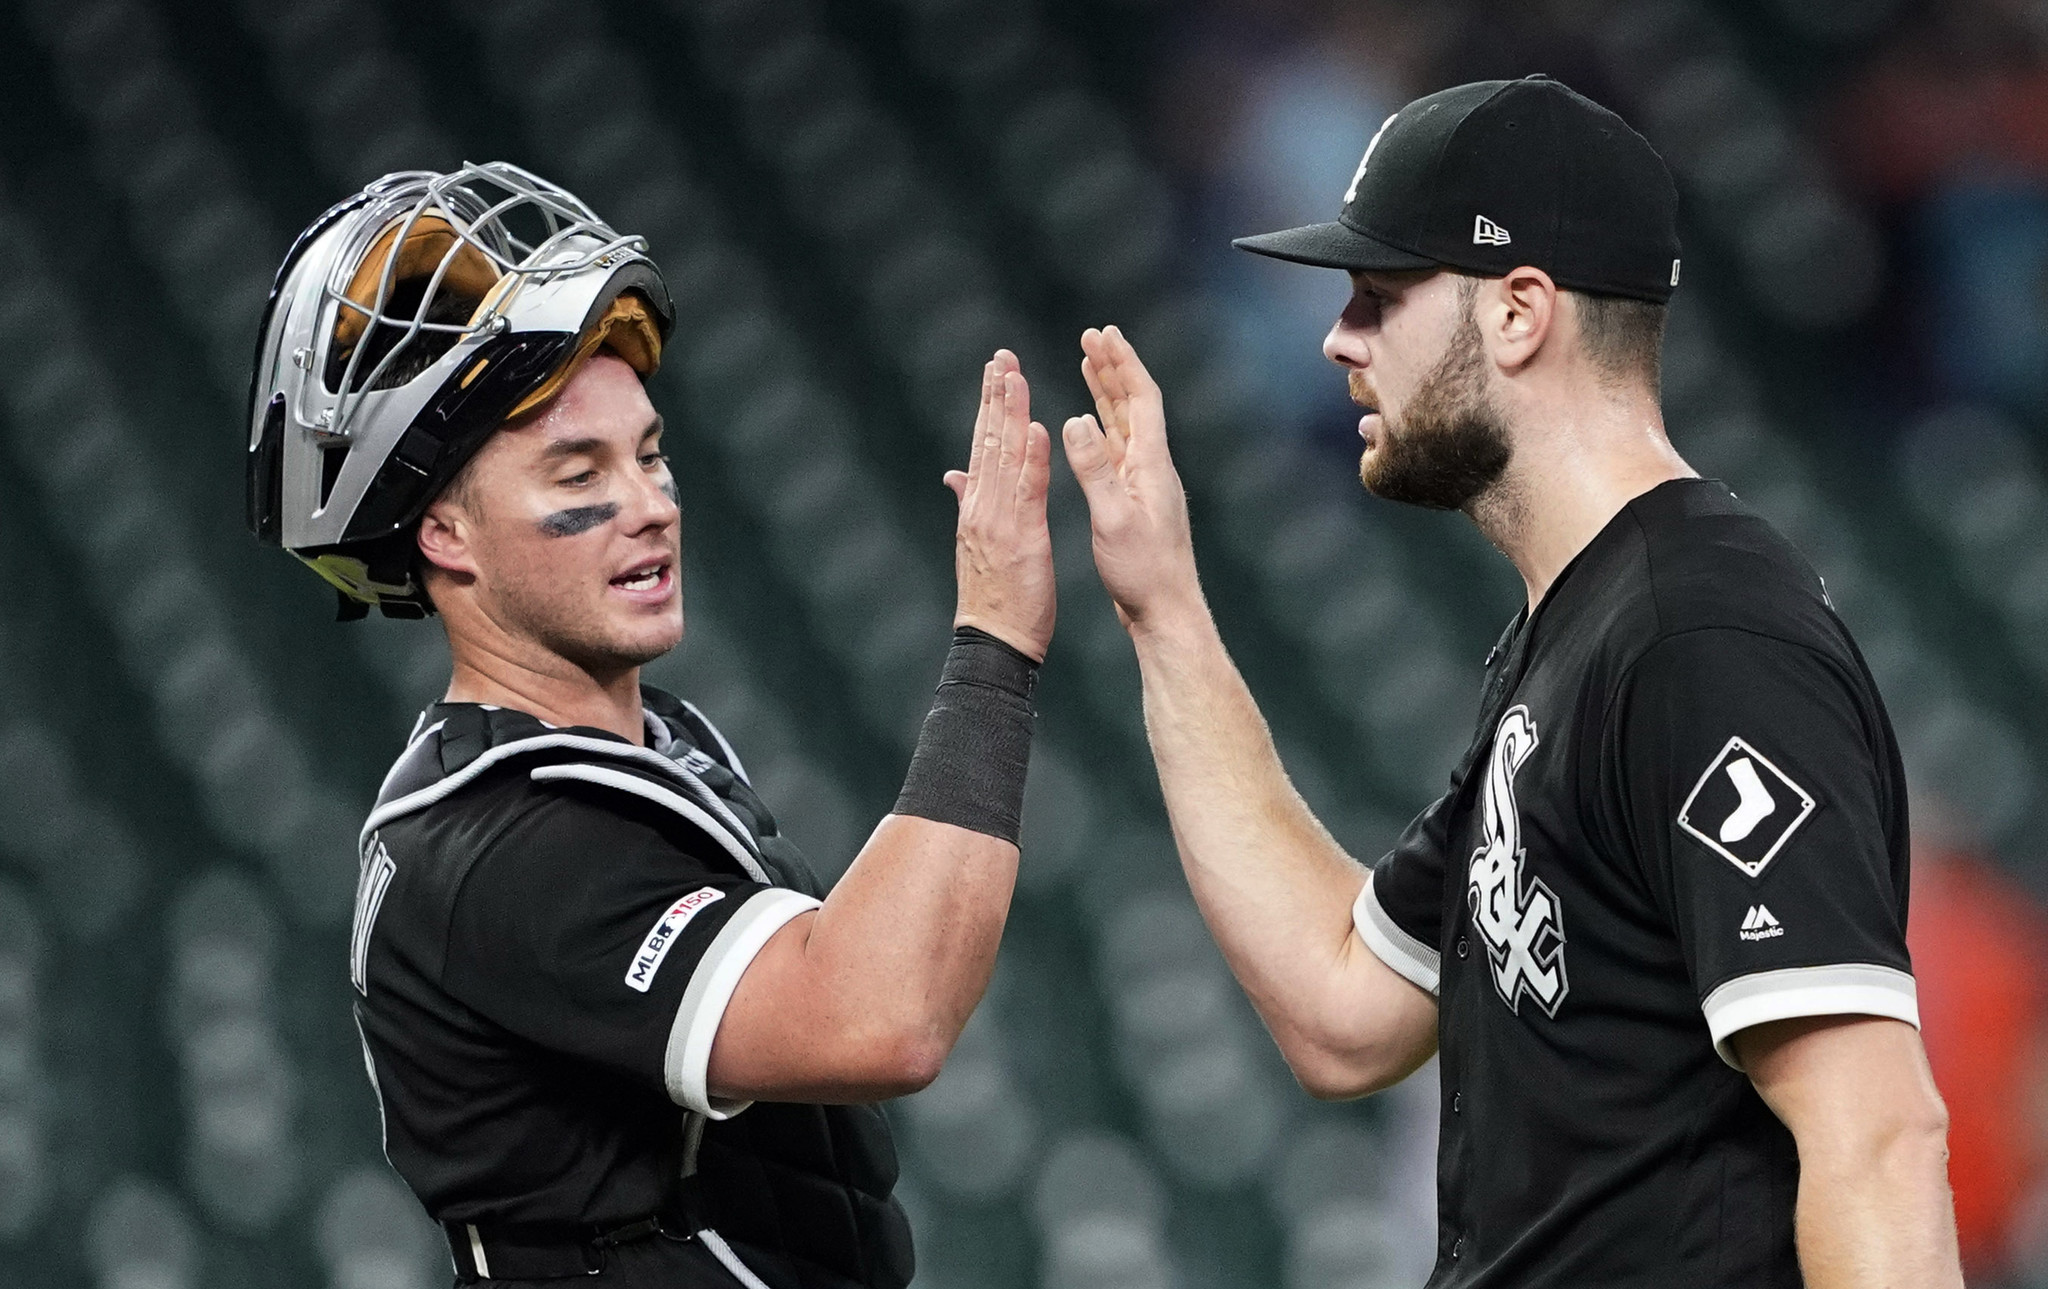 Lucas Giolito strikes out 9 in a 4-hit shutout of the Astros as the White Sox win 4-0 to split the series